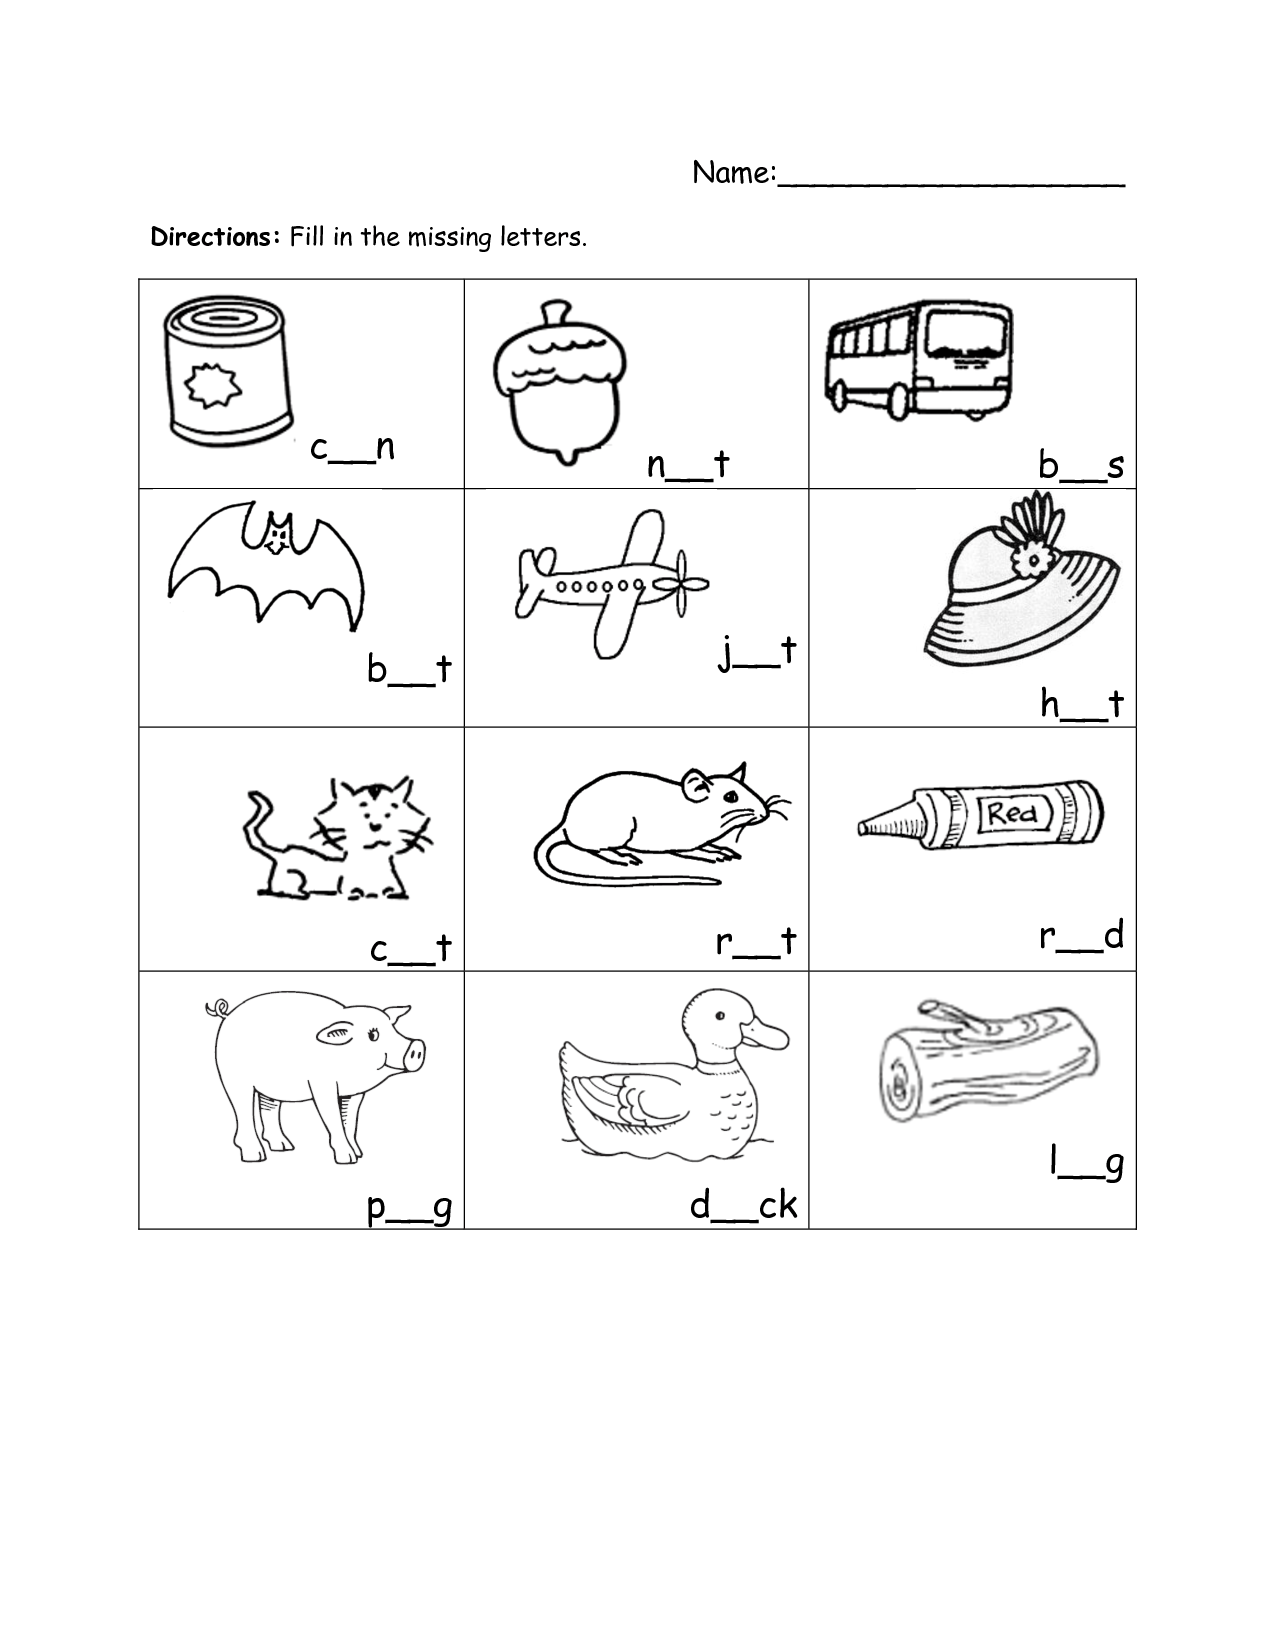 10 Best Images Of Fill In Missing Letter Worksheets